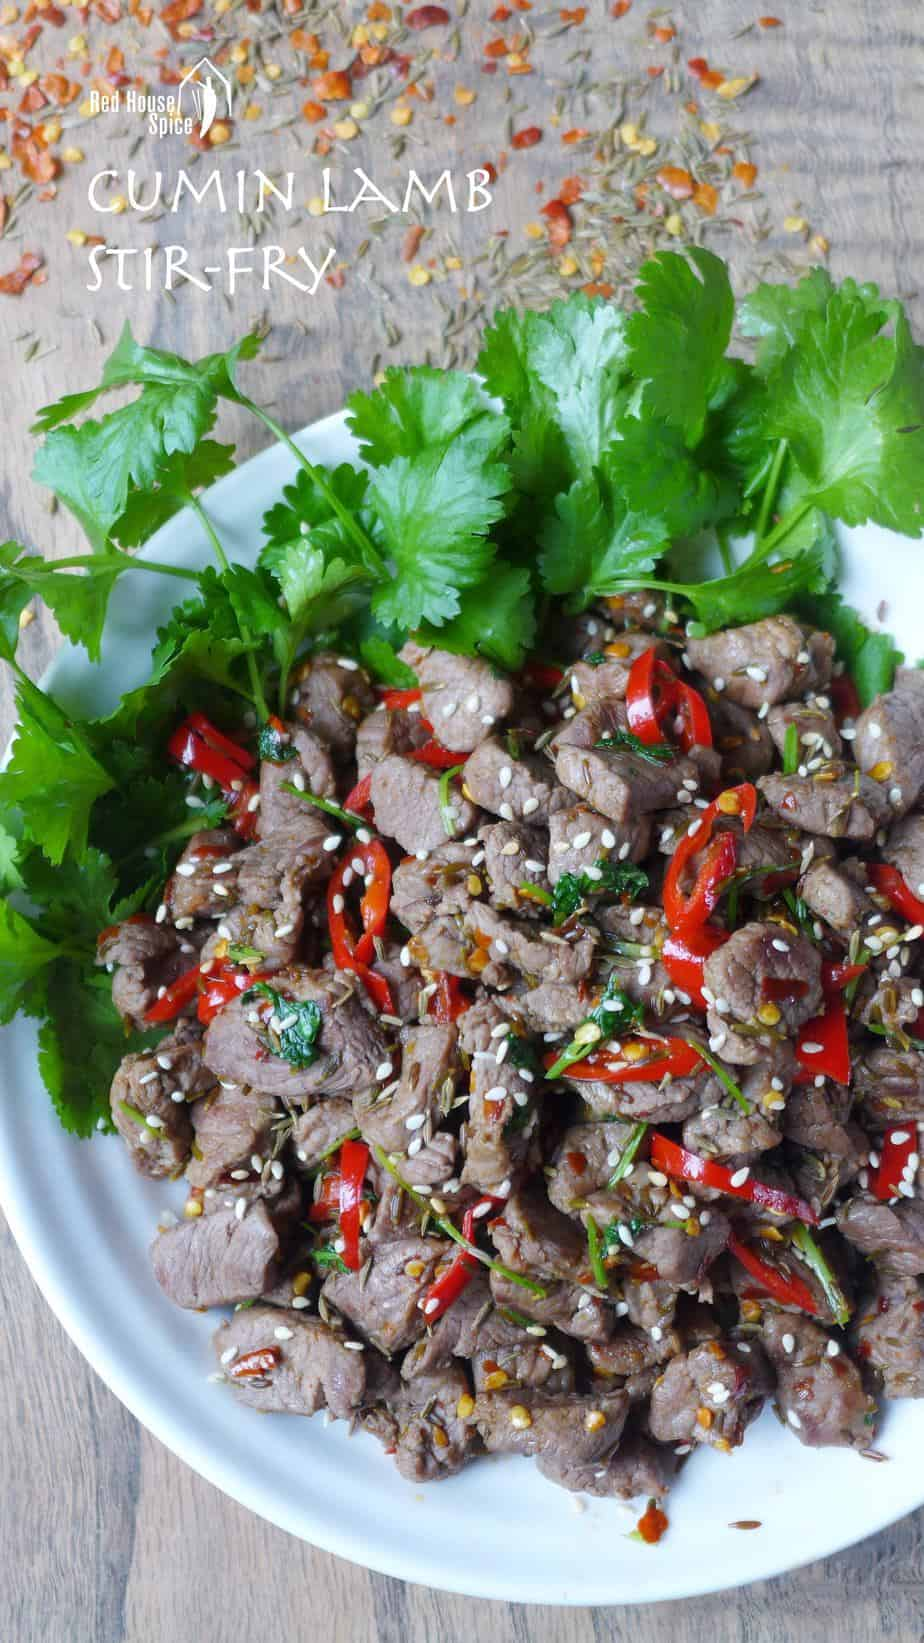 Aromatic and pungent, spicy cumin lamb stir-fry is a dish that seldom fails to impress. This recipe offers two tricks to obtain the perfect texture.